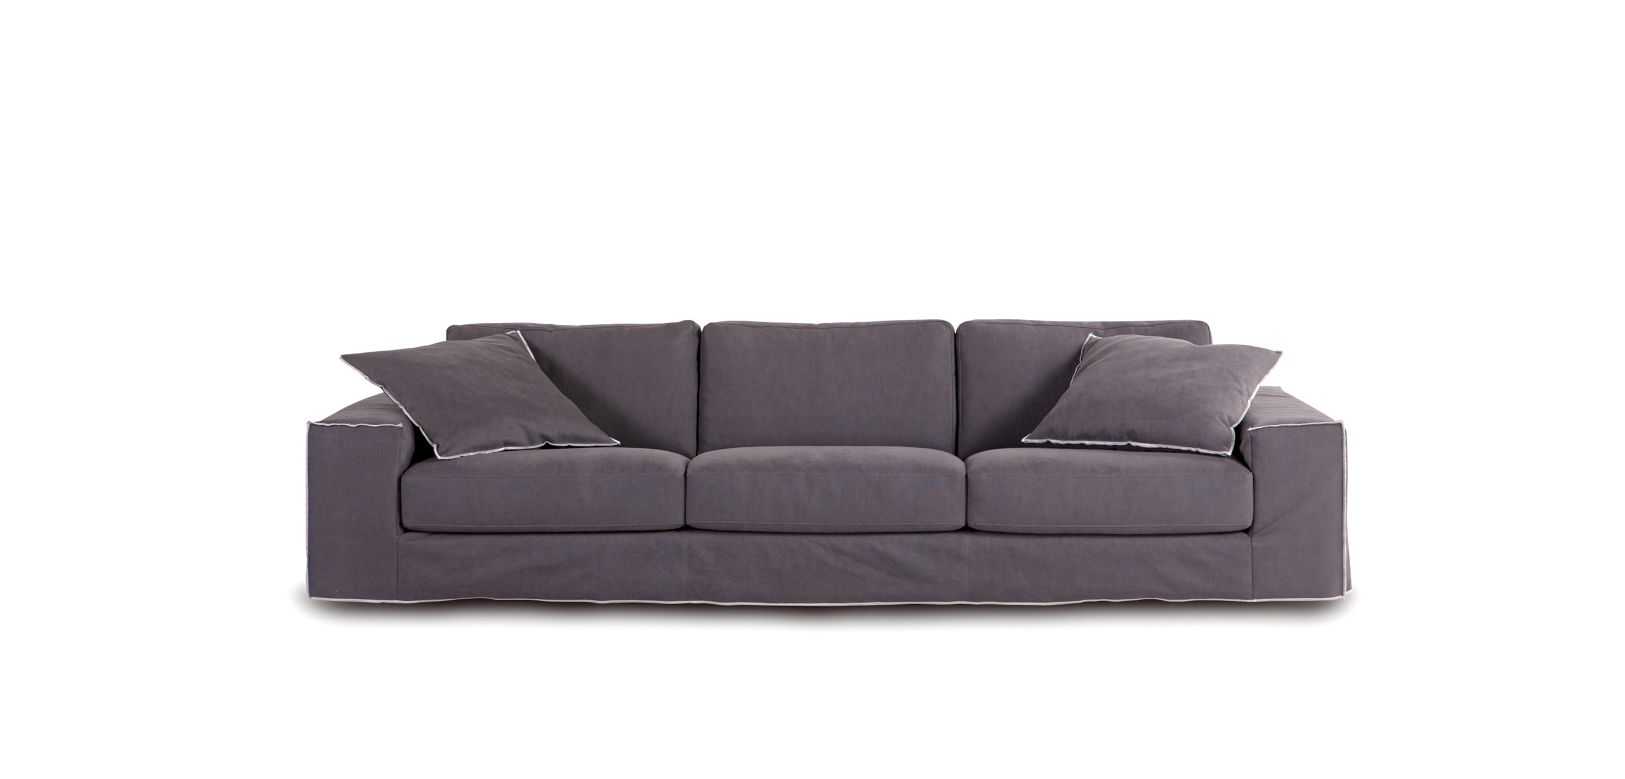 Ardara 4 seat sofa roche bobois for Sofa 1 80 breit